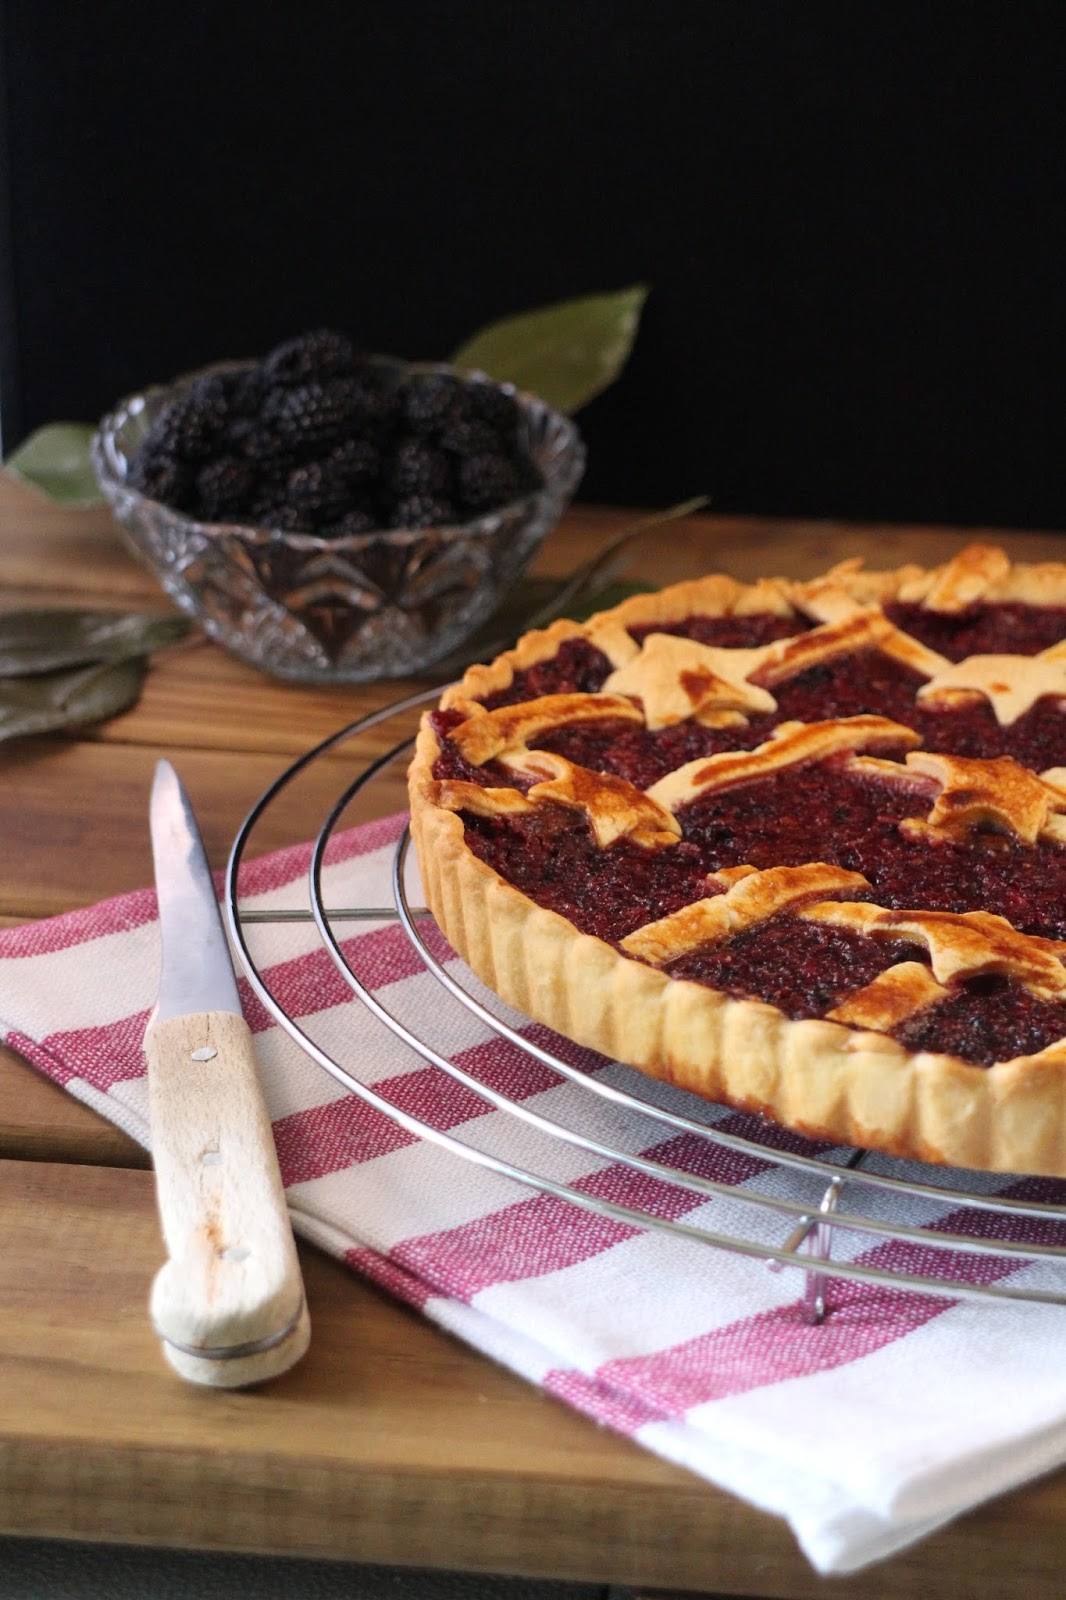 pie-de-moras-y-nectarinas, blackberry-pie